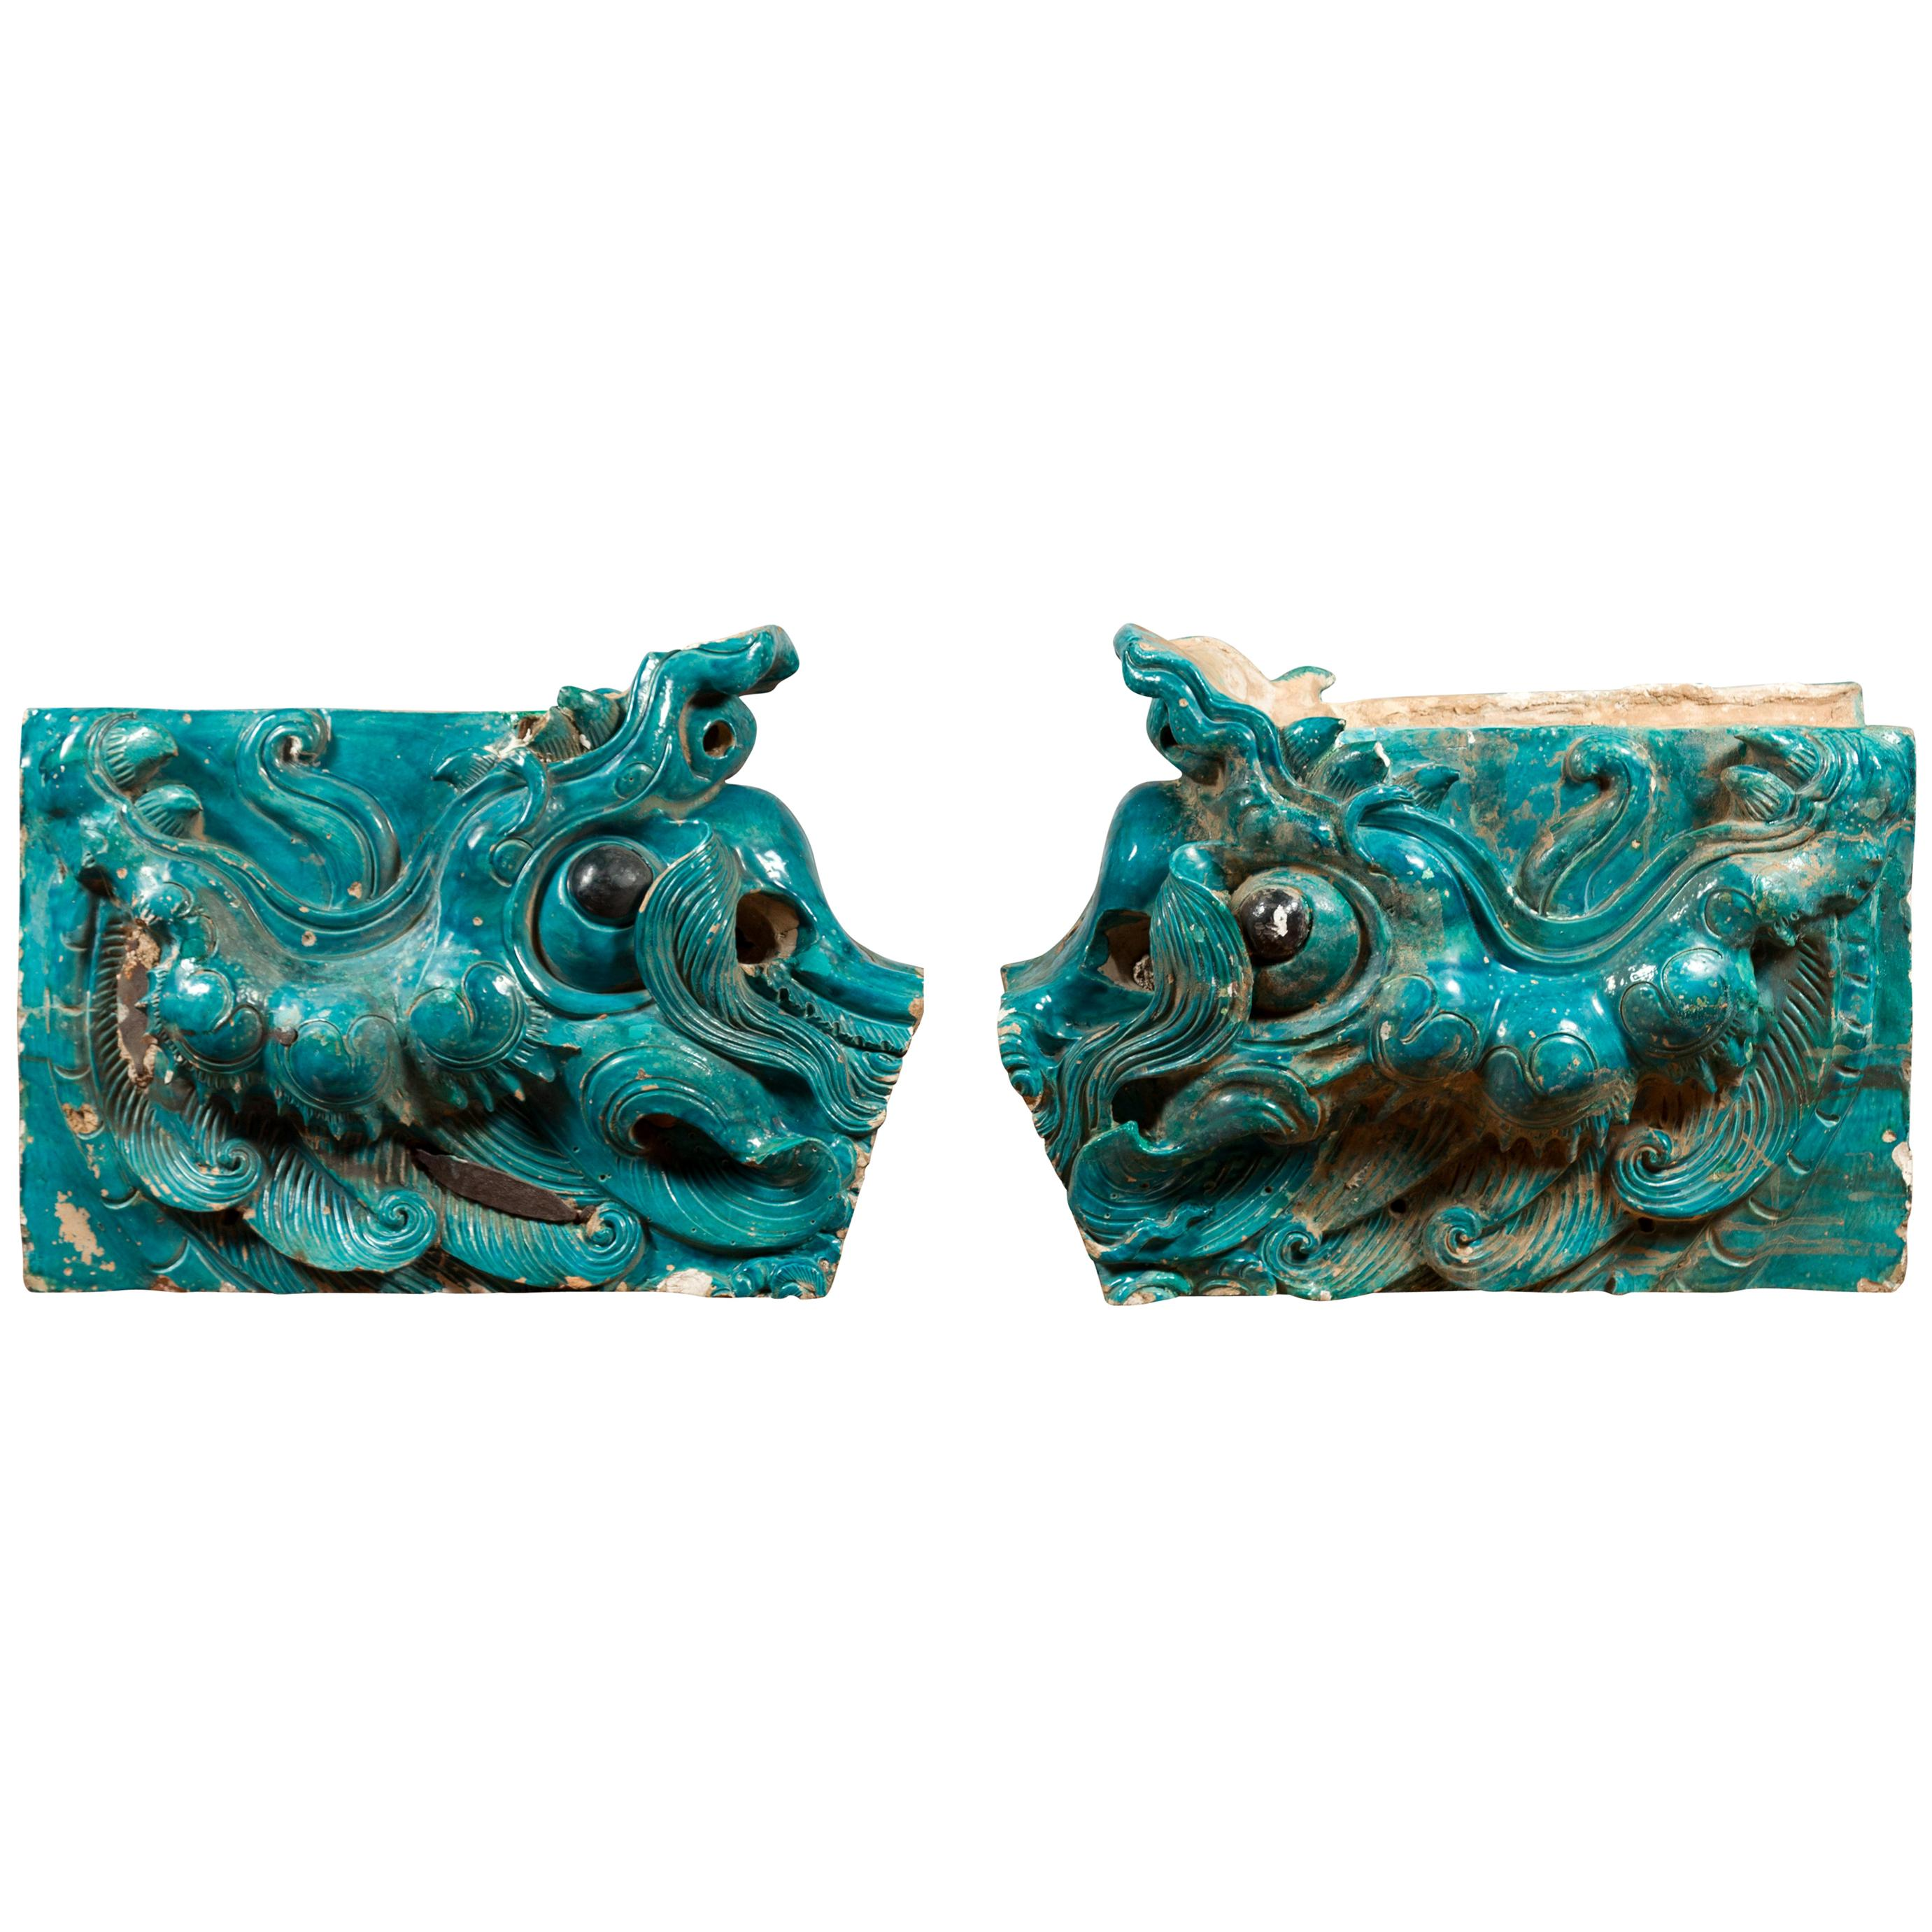 Pair of Ming Turquoise Glazed Temple Dragons from the 15th or 16th Century